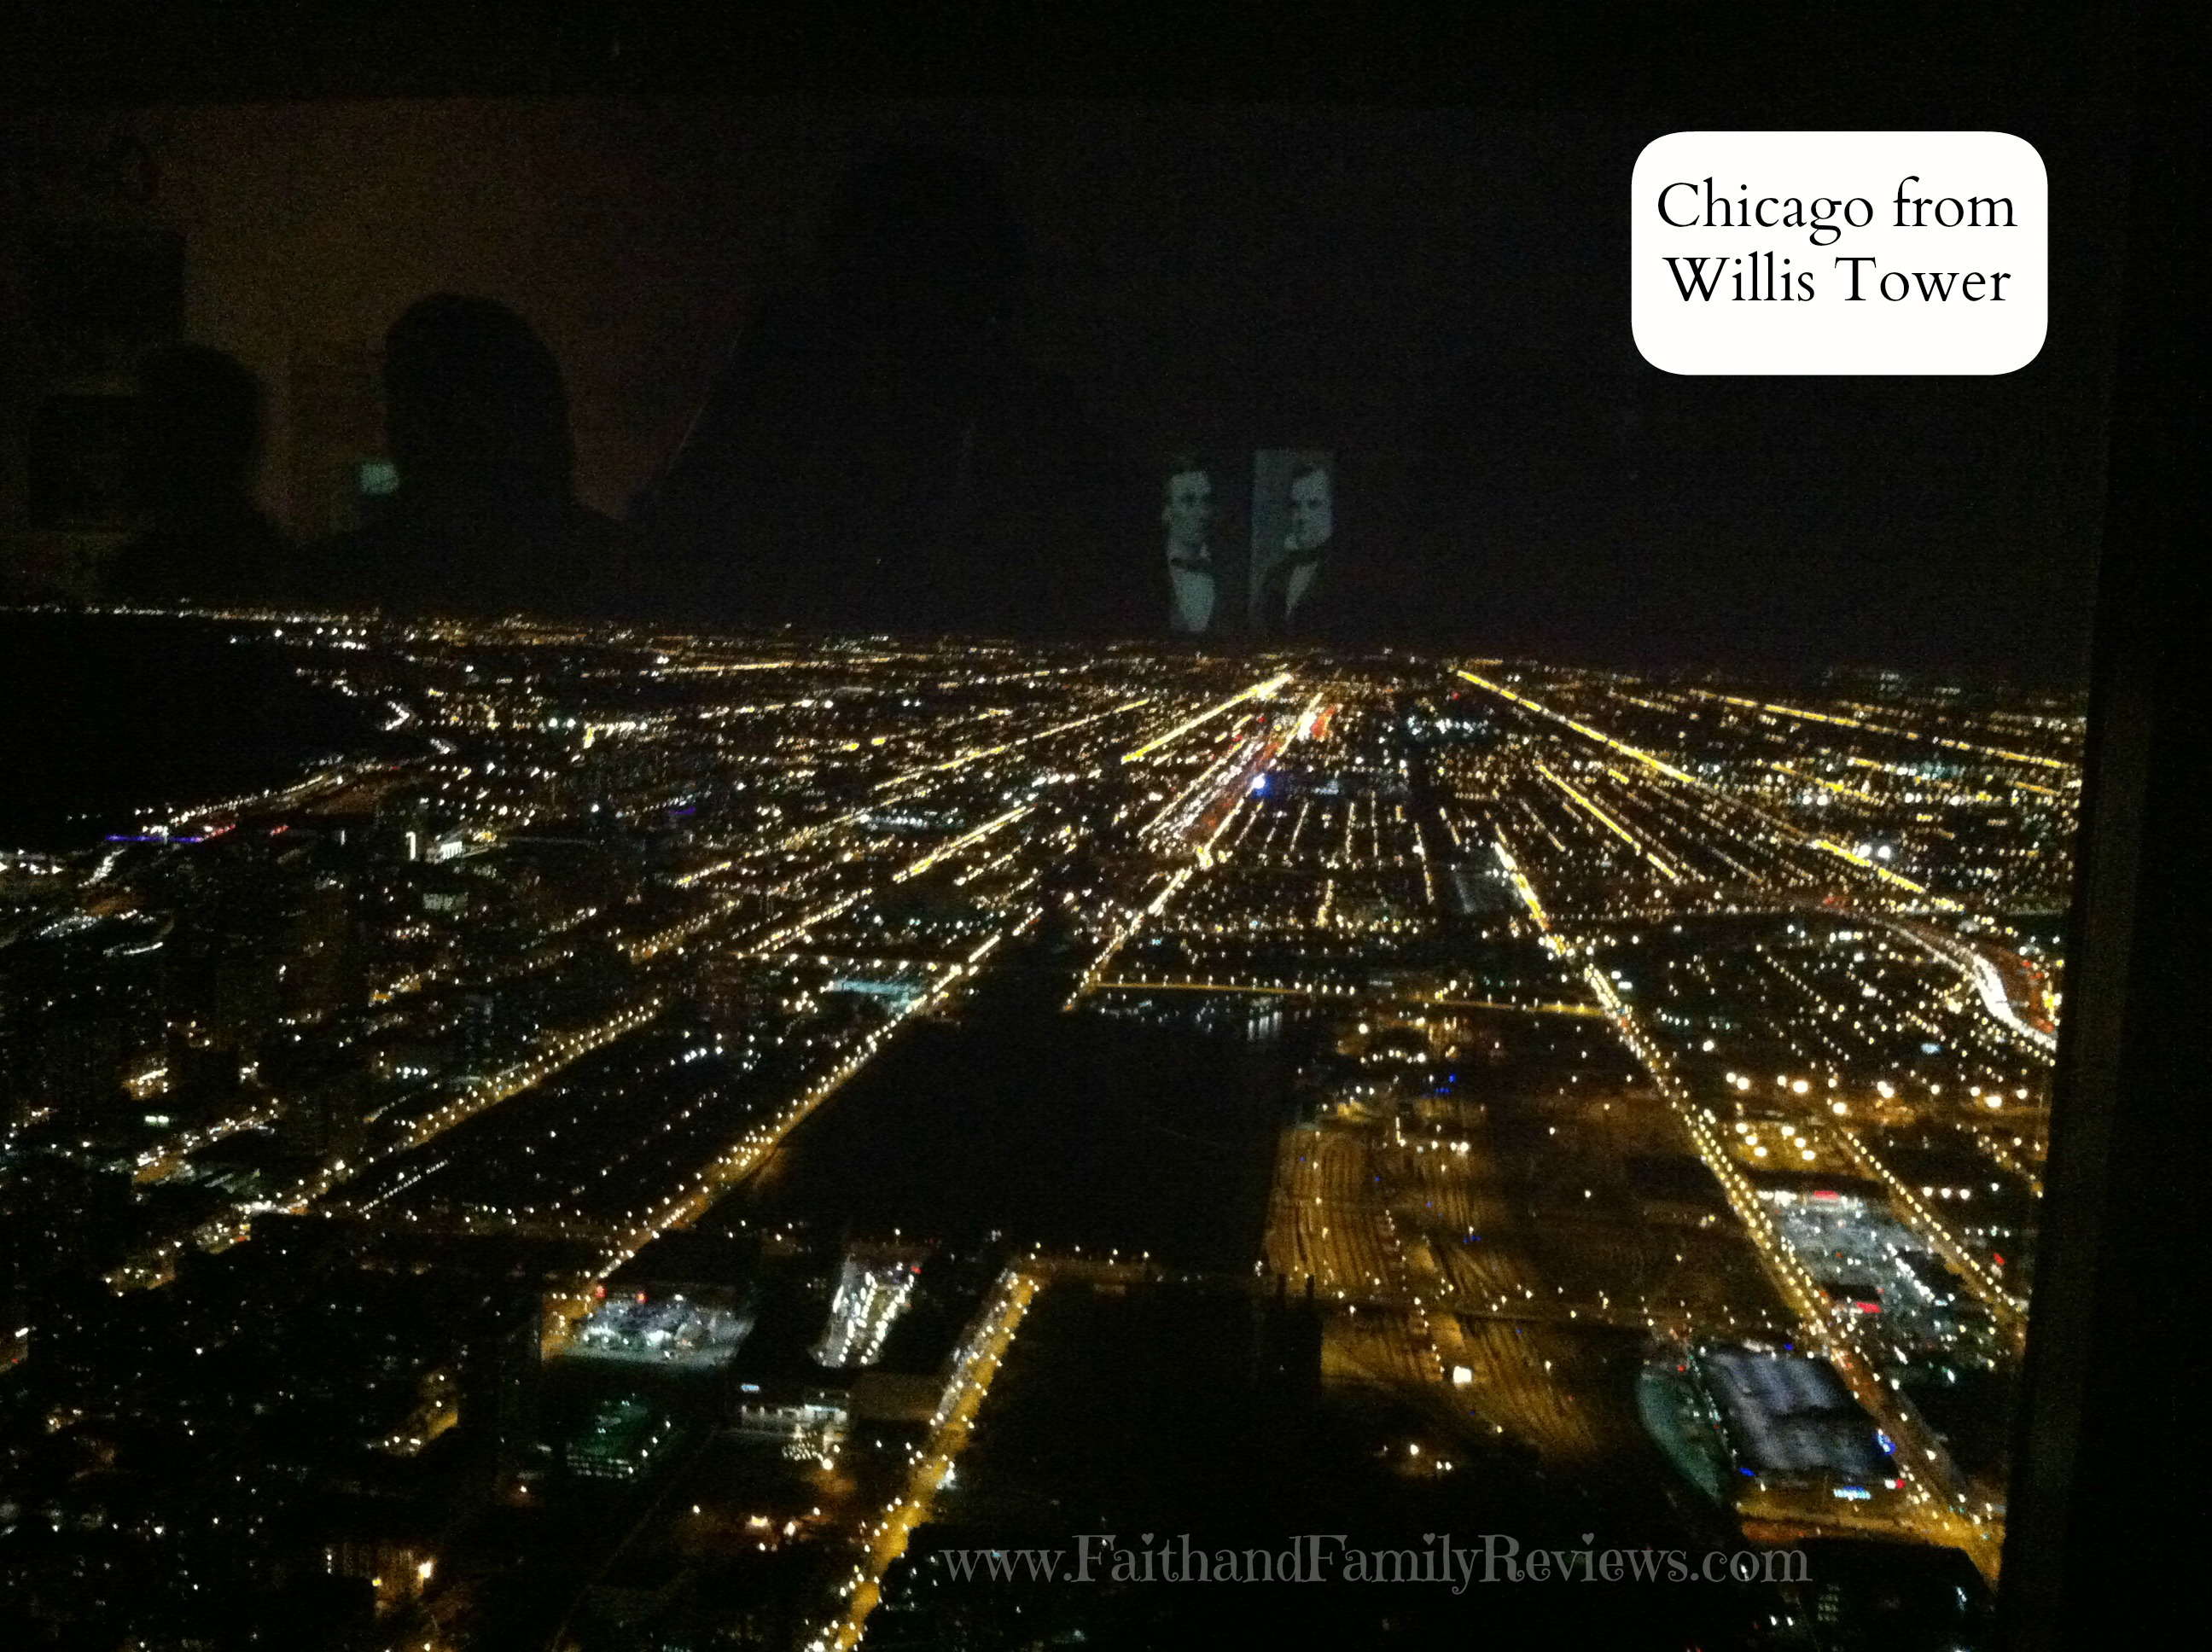 FFR Chicago at Night from Willis Tower 2